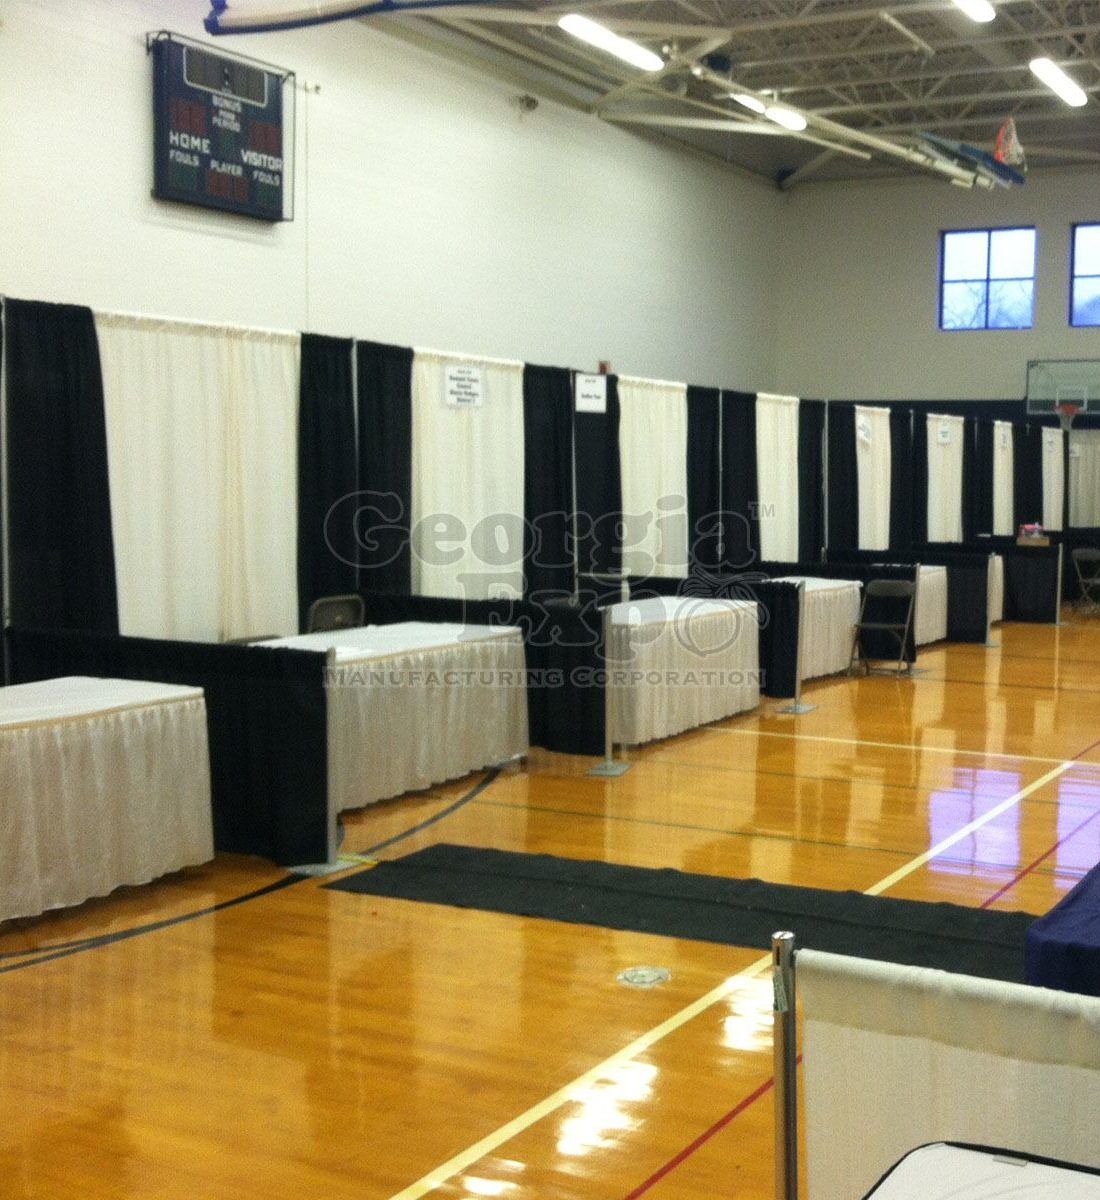 Trade Show Booth Number : In line booths kit trade show drape panels